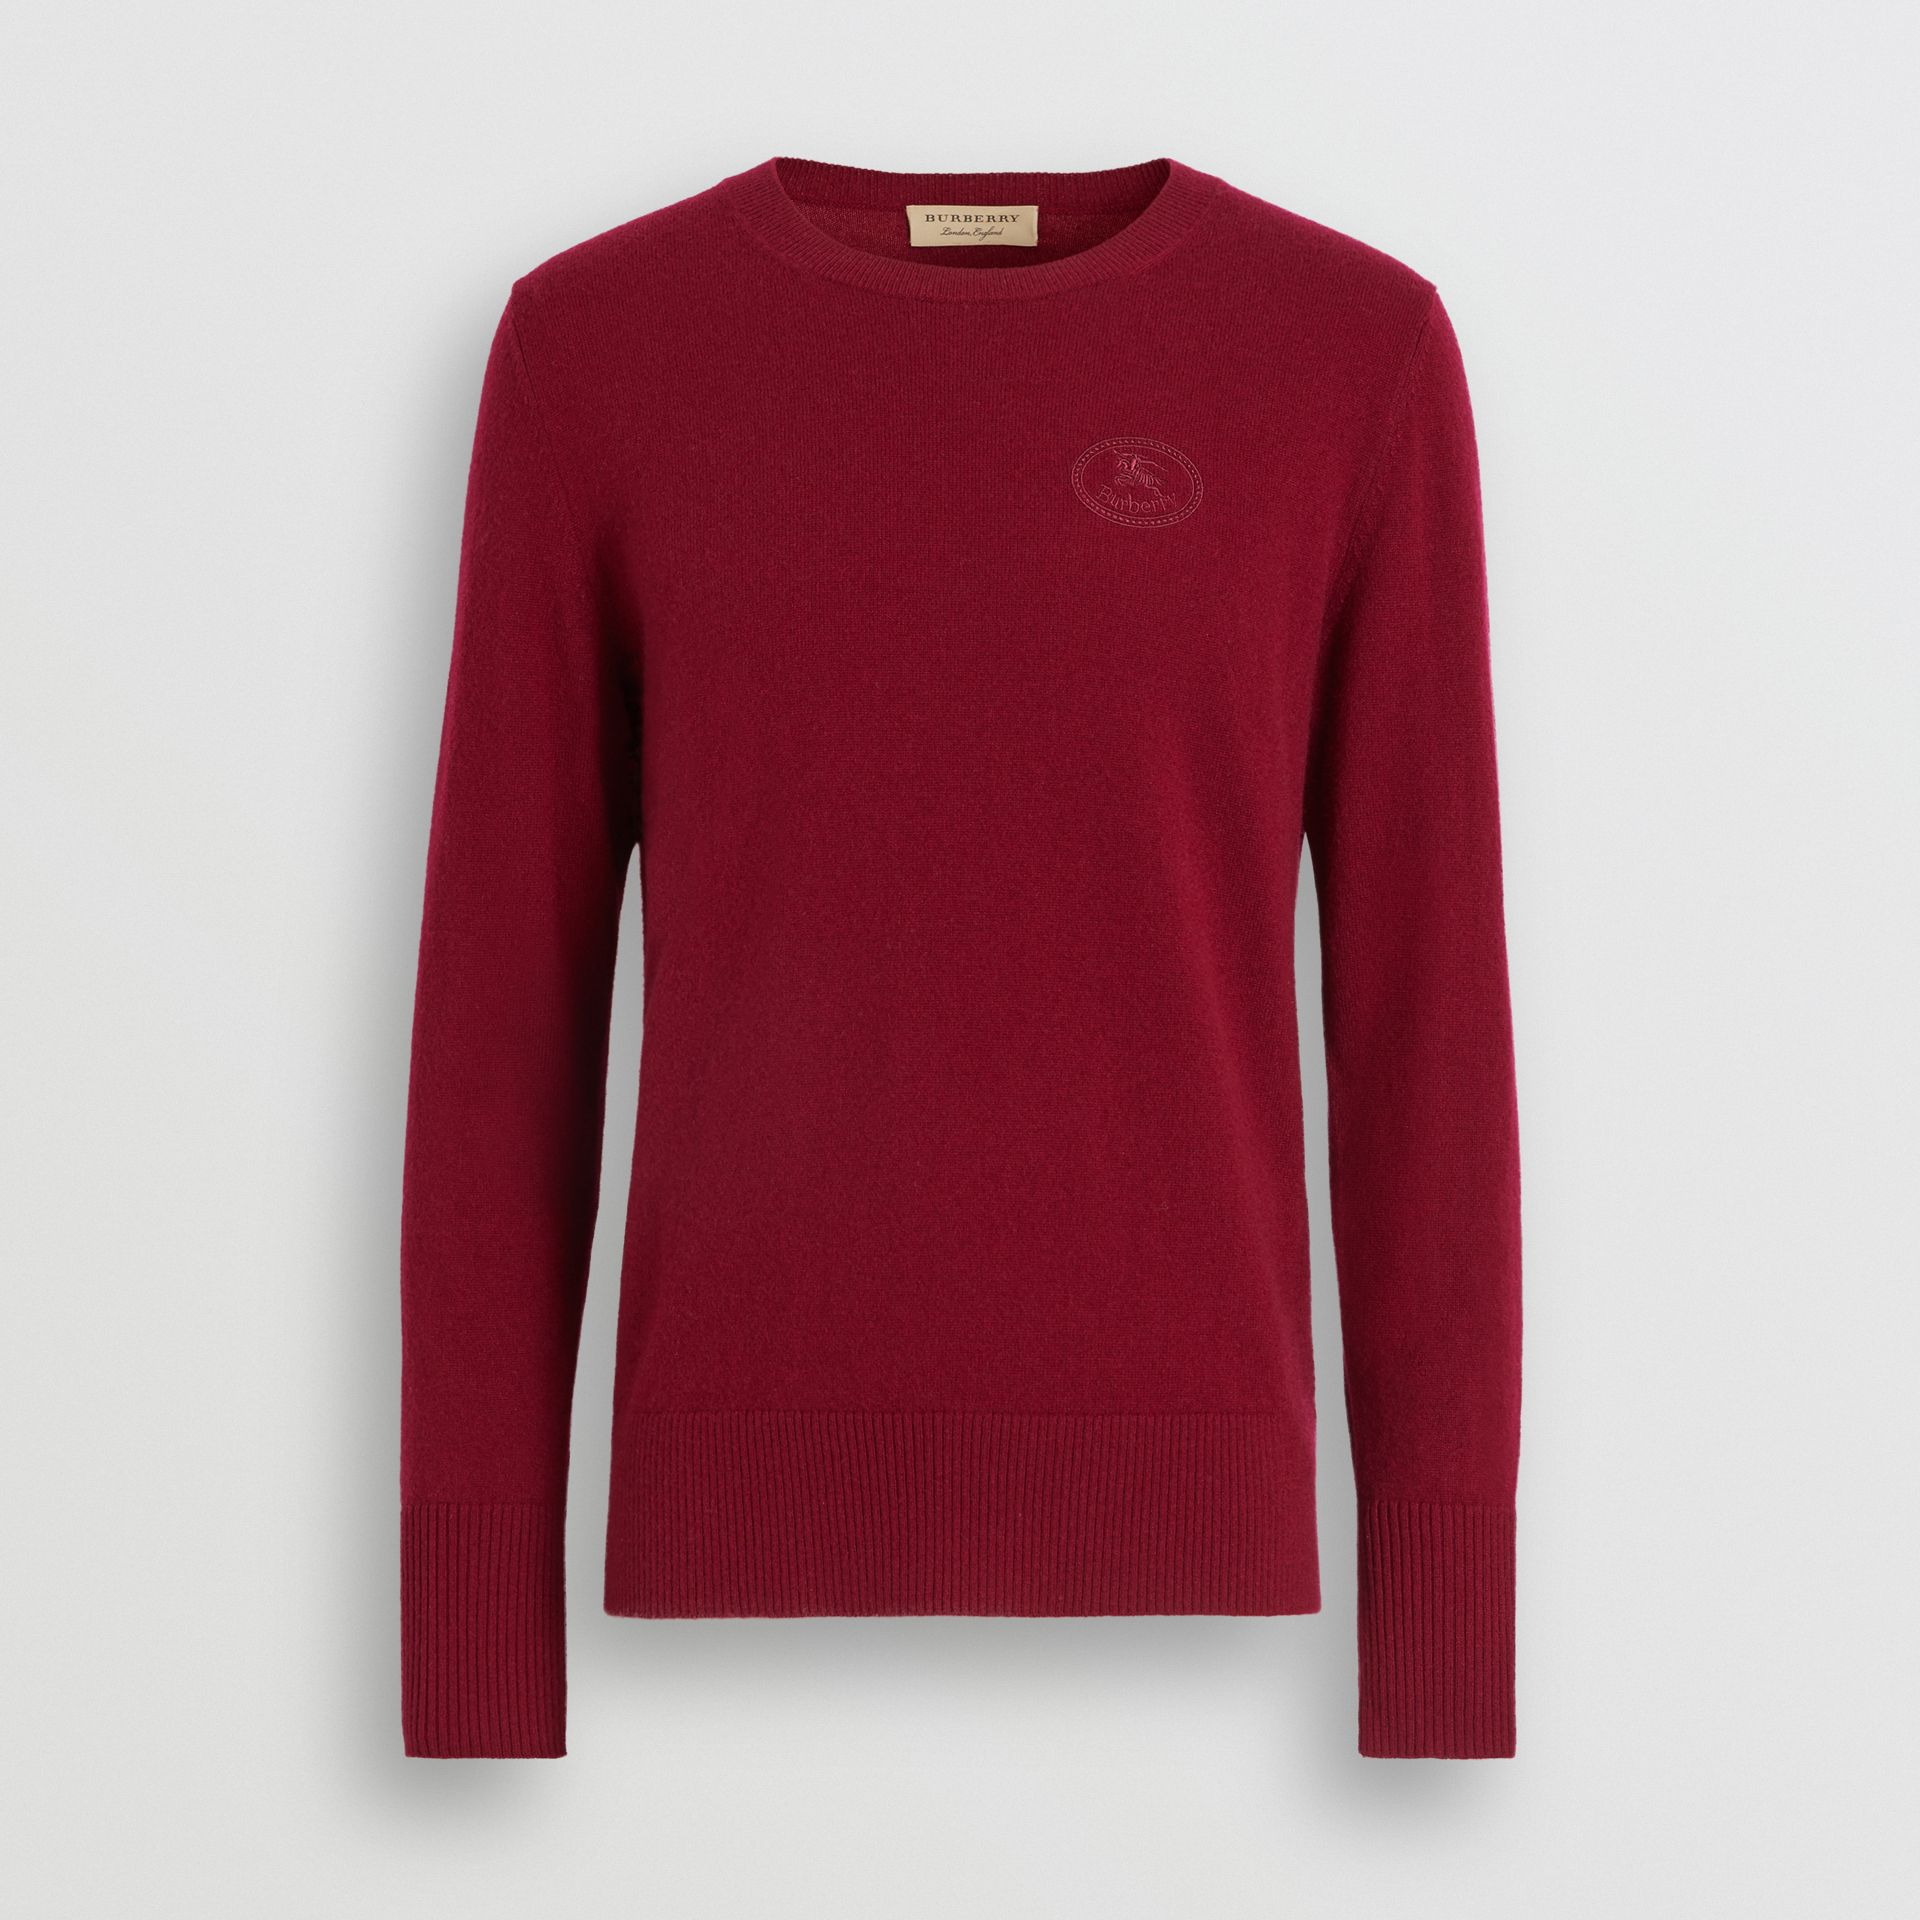 Embroidered Logo Cashmere Sweater in Claret - Men | Burberry Singapore - gallery image 3